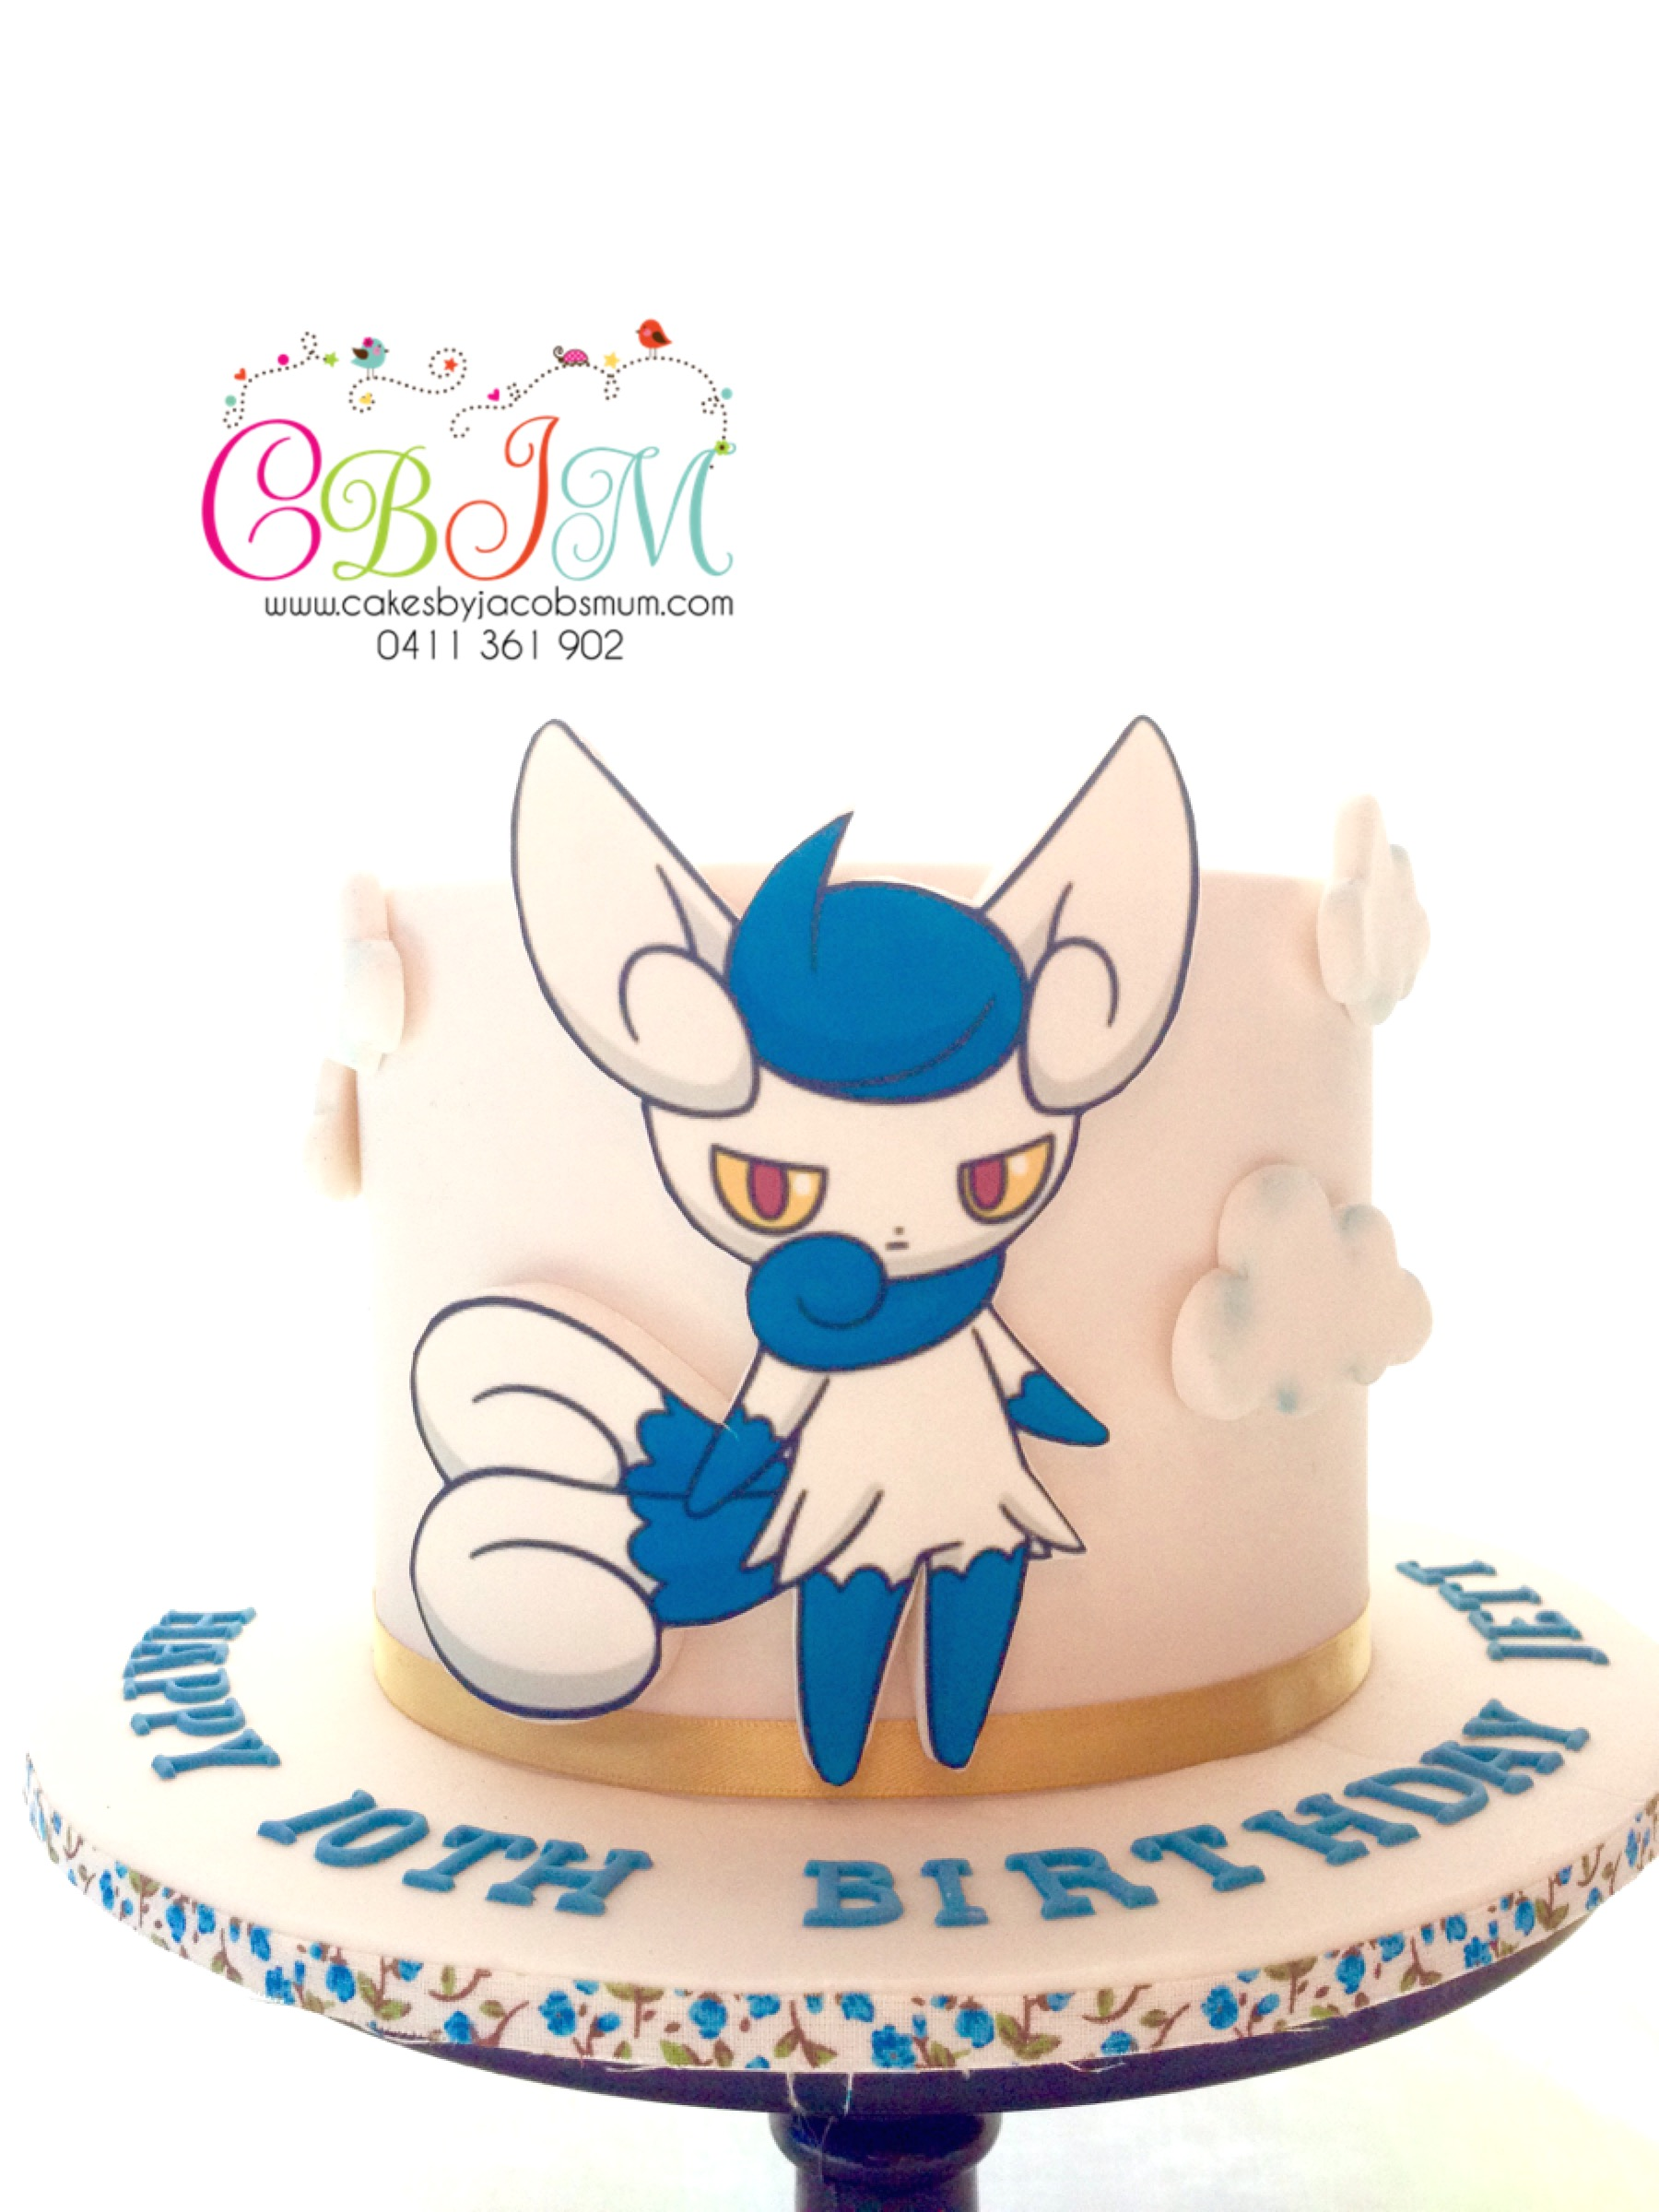 Meowstic Pokemon Cake